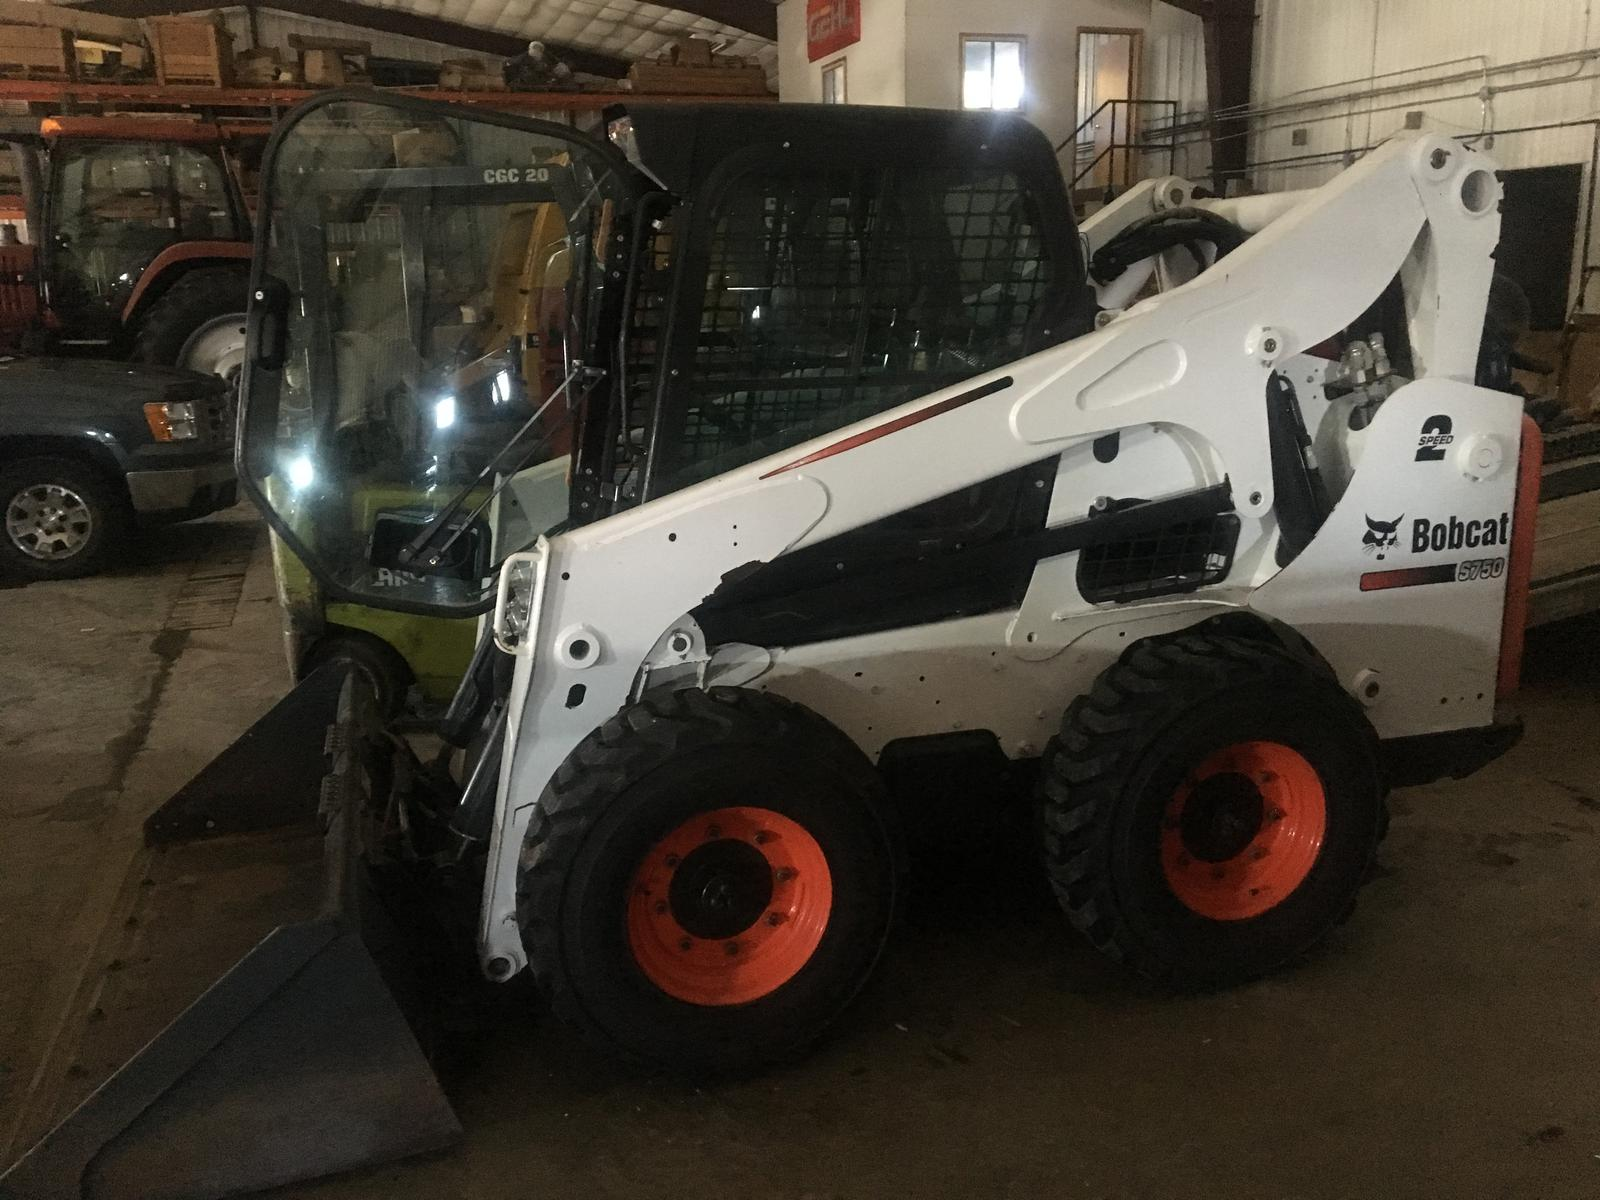 2013 Bobcat S750 for sale in Dumont, IA | Mark's Tractor & Implement, Inc.  (641) 732-5044